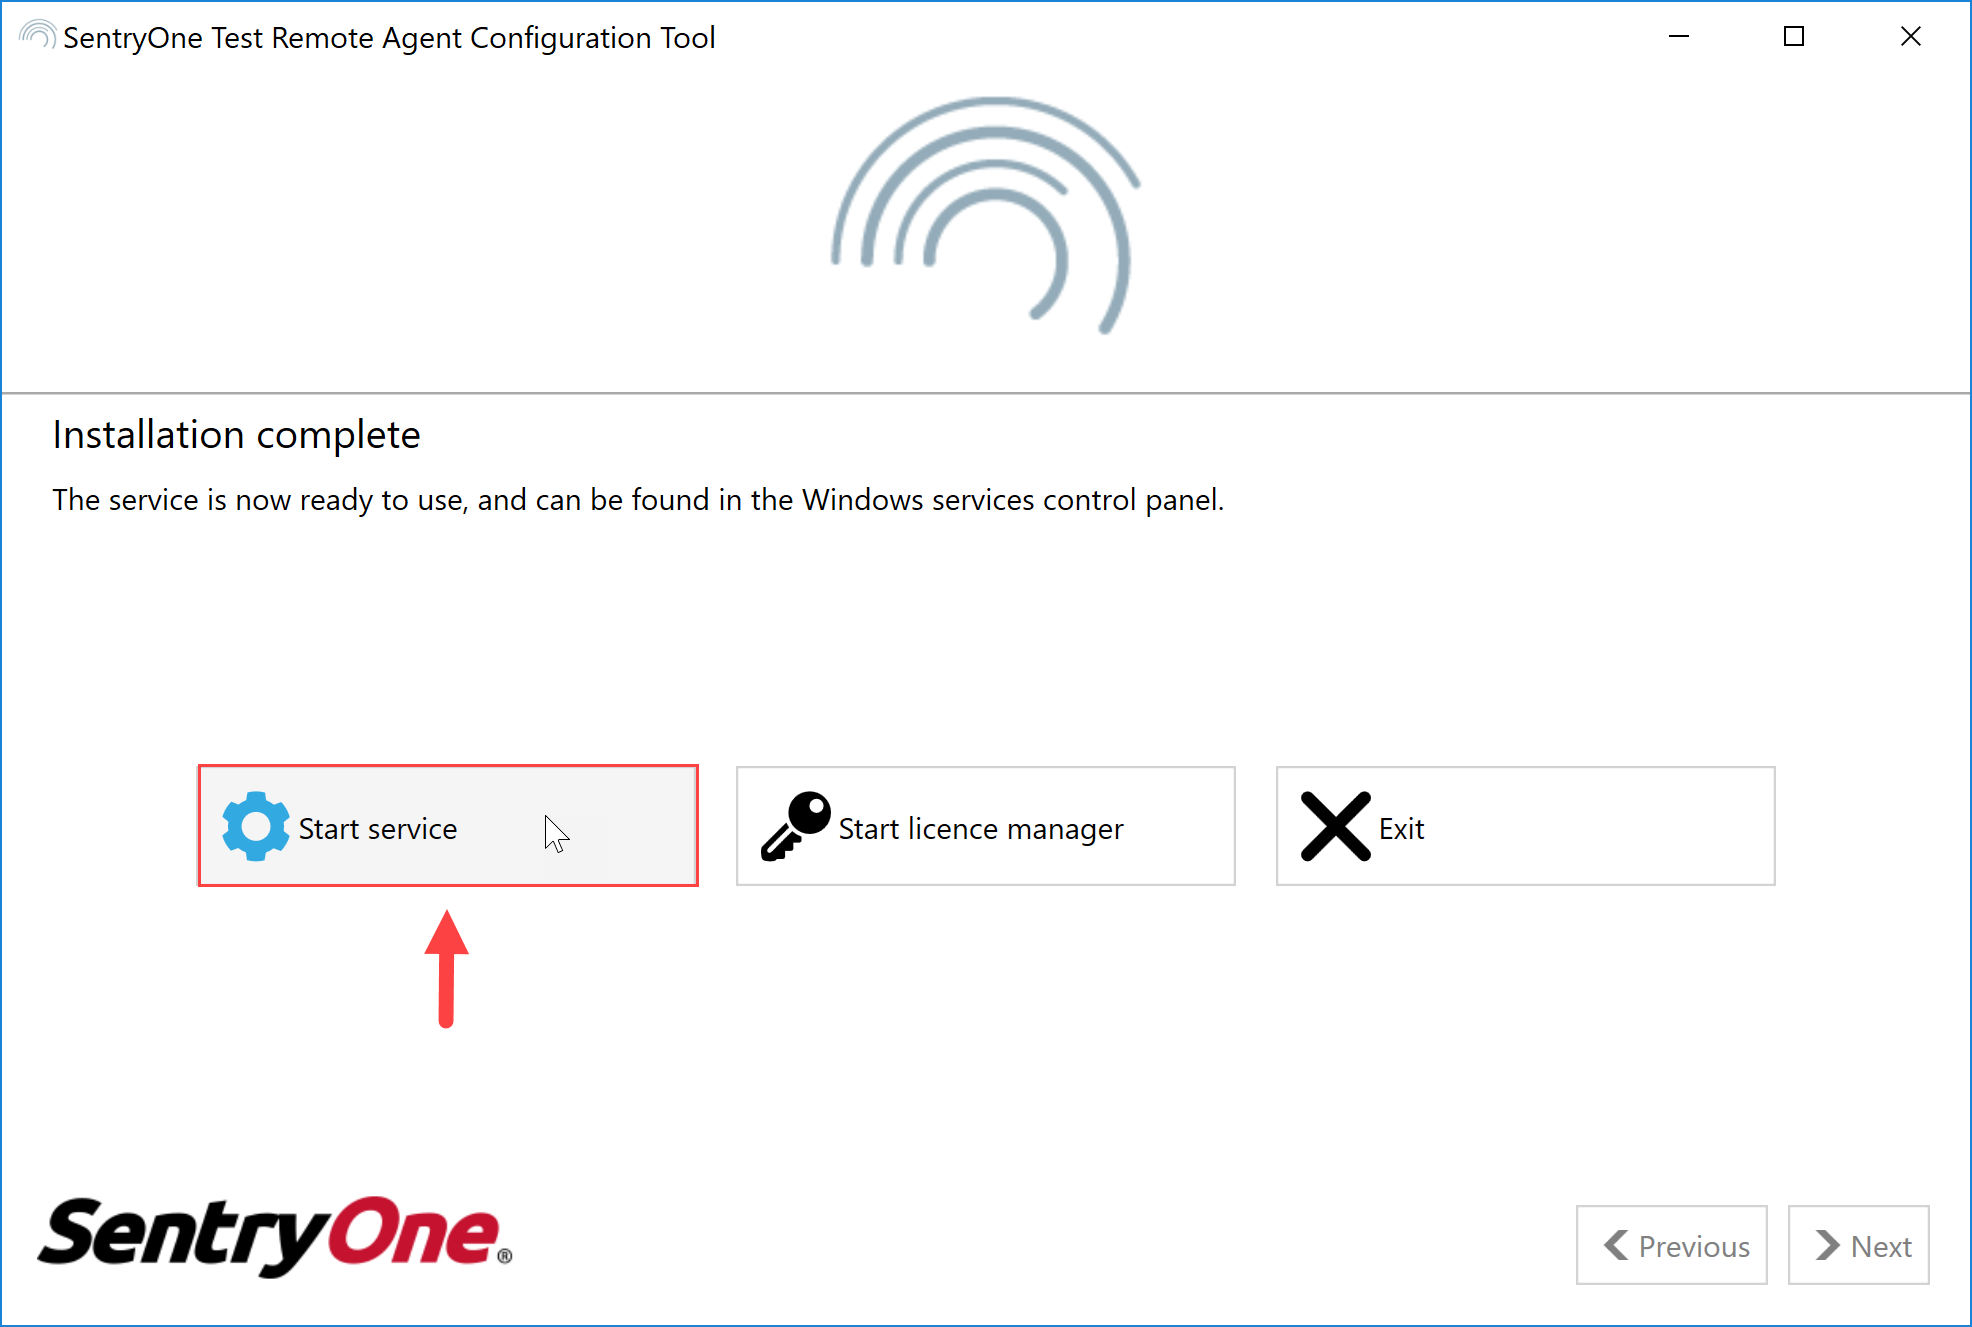 SentryOne Test Remote Agent Configuration Tool Start Service